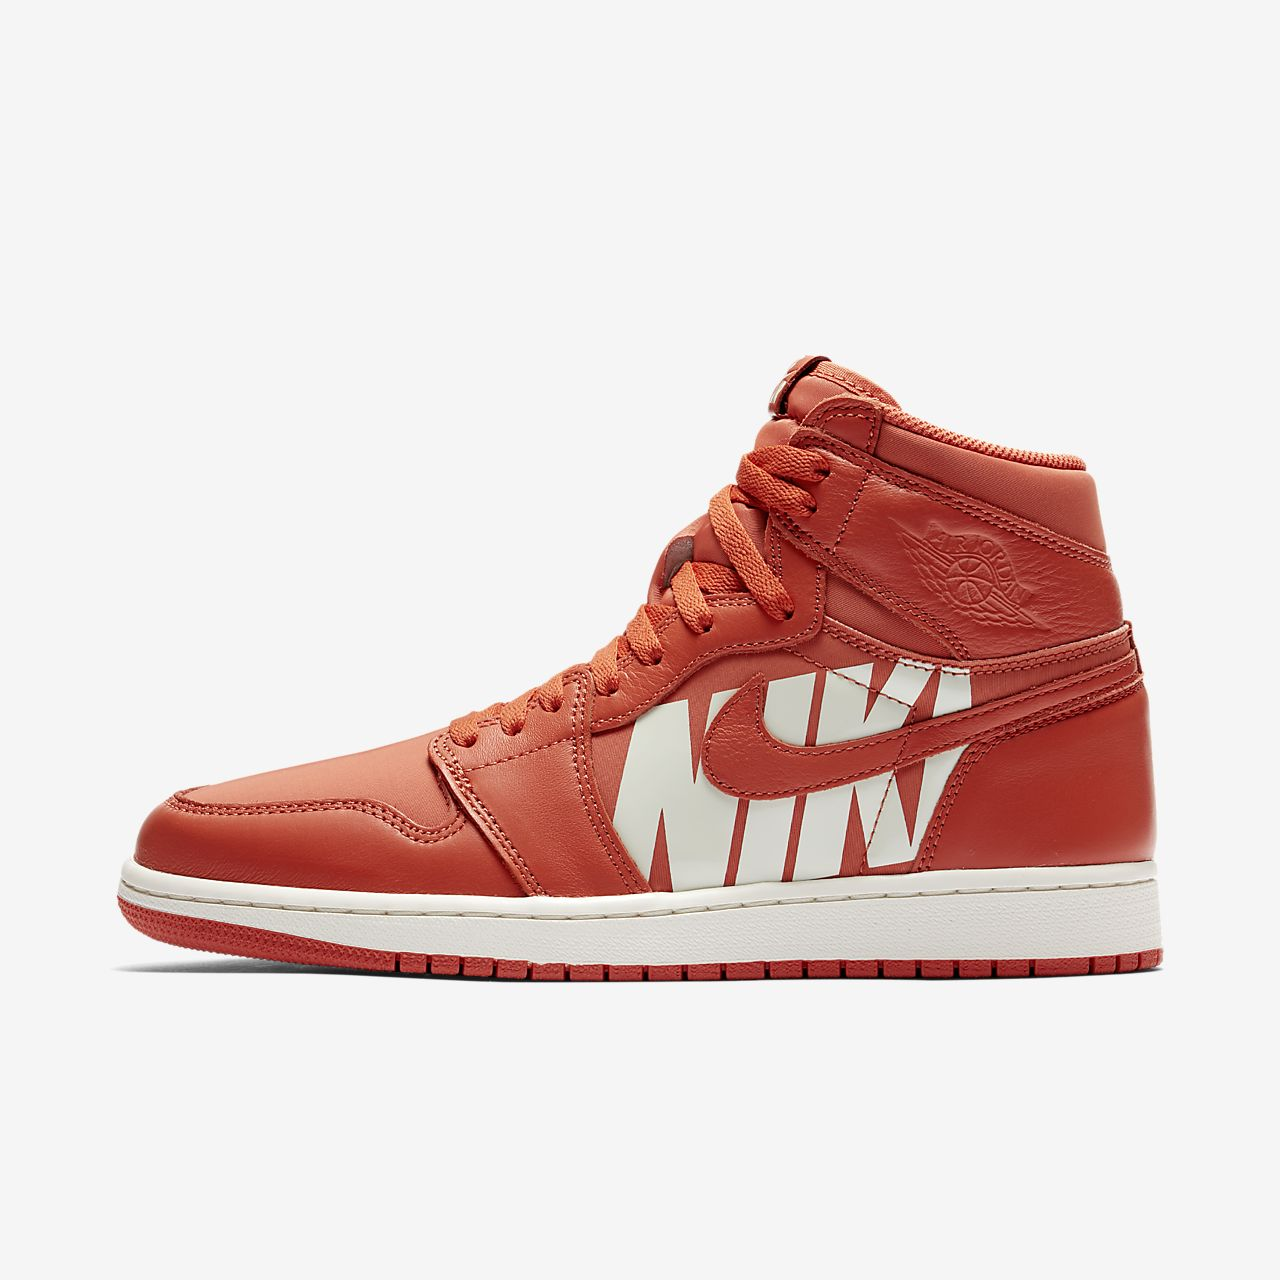 fd0f109d4ba Air Jordan 1 Retro High OG Shoe. Nike.com ZA